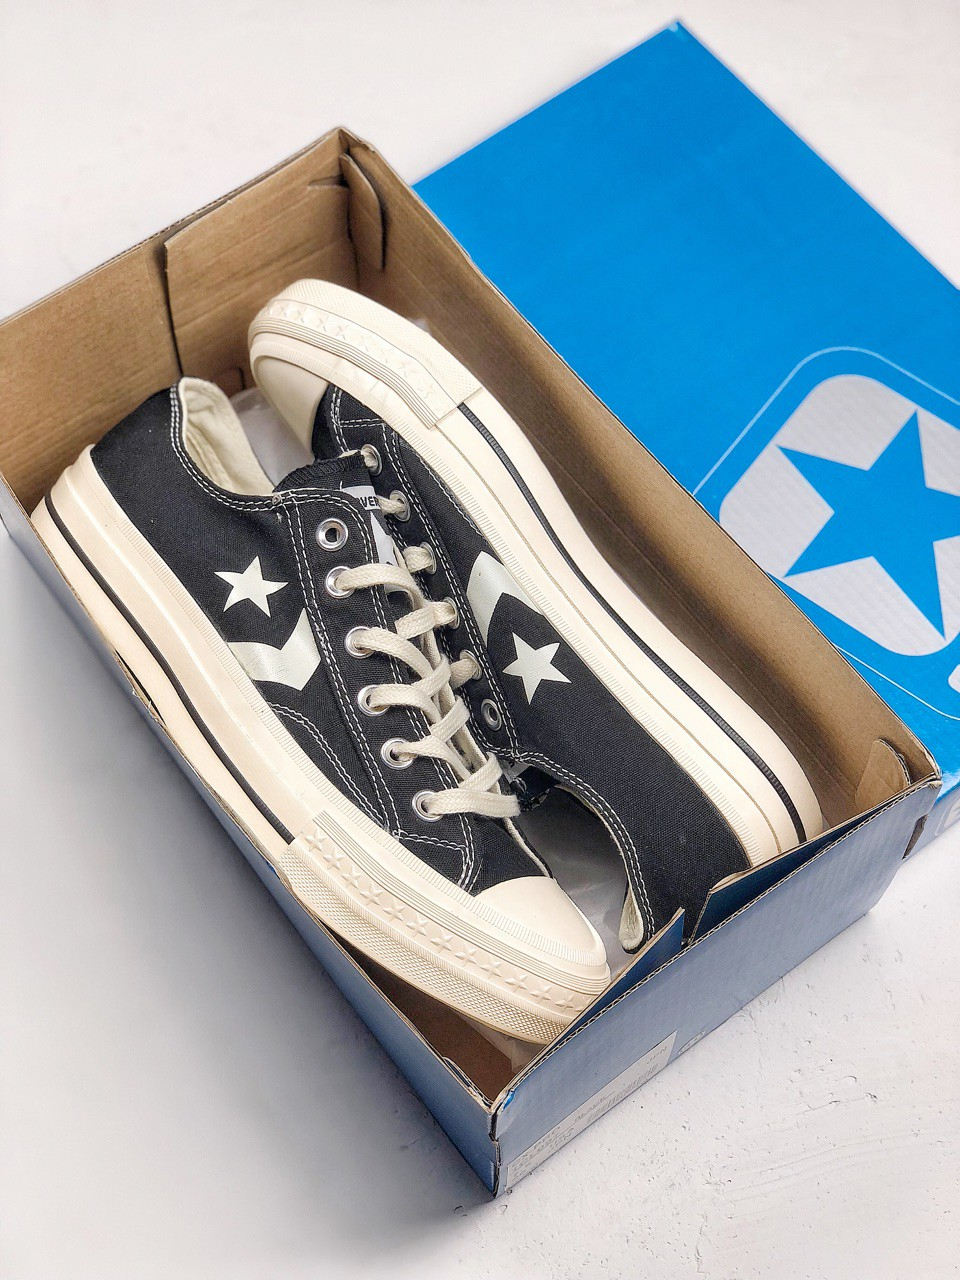 Converse One Star PRO,Converse One Star